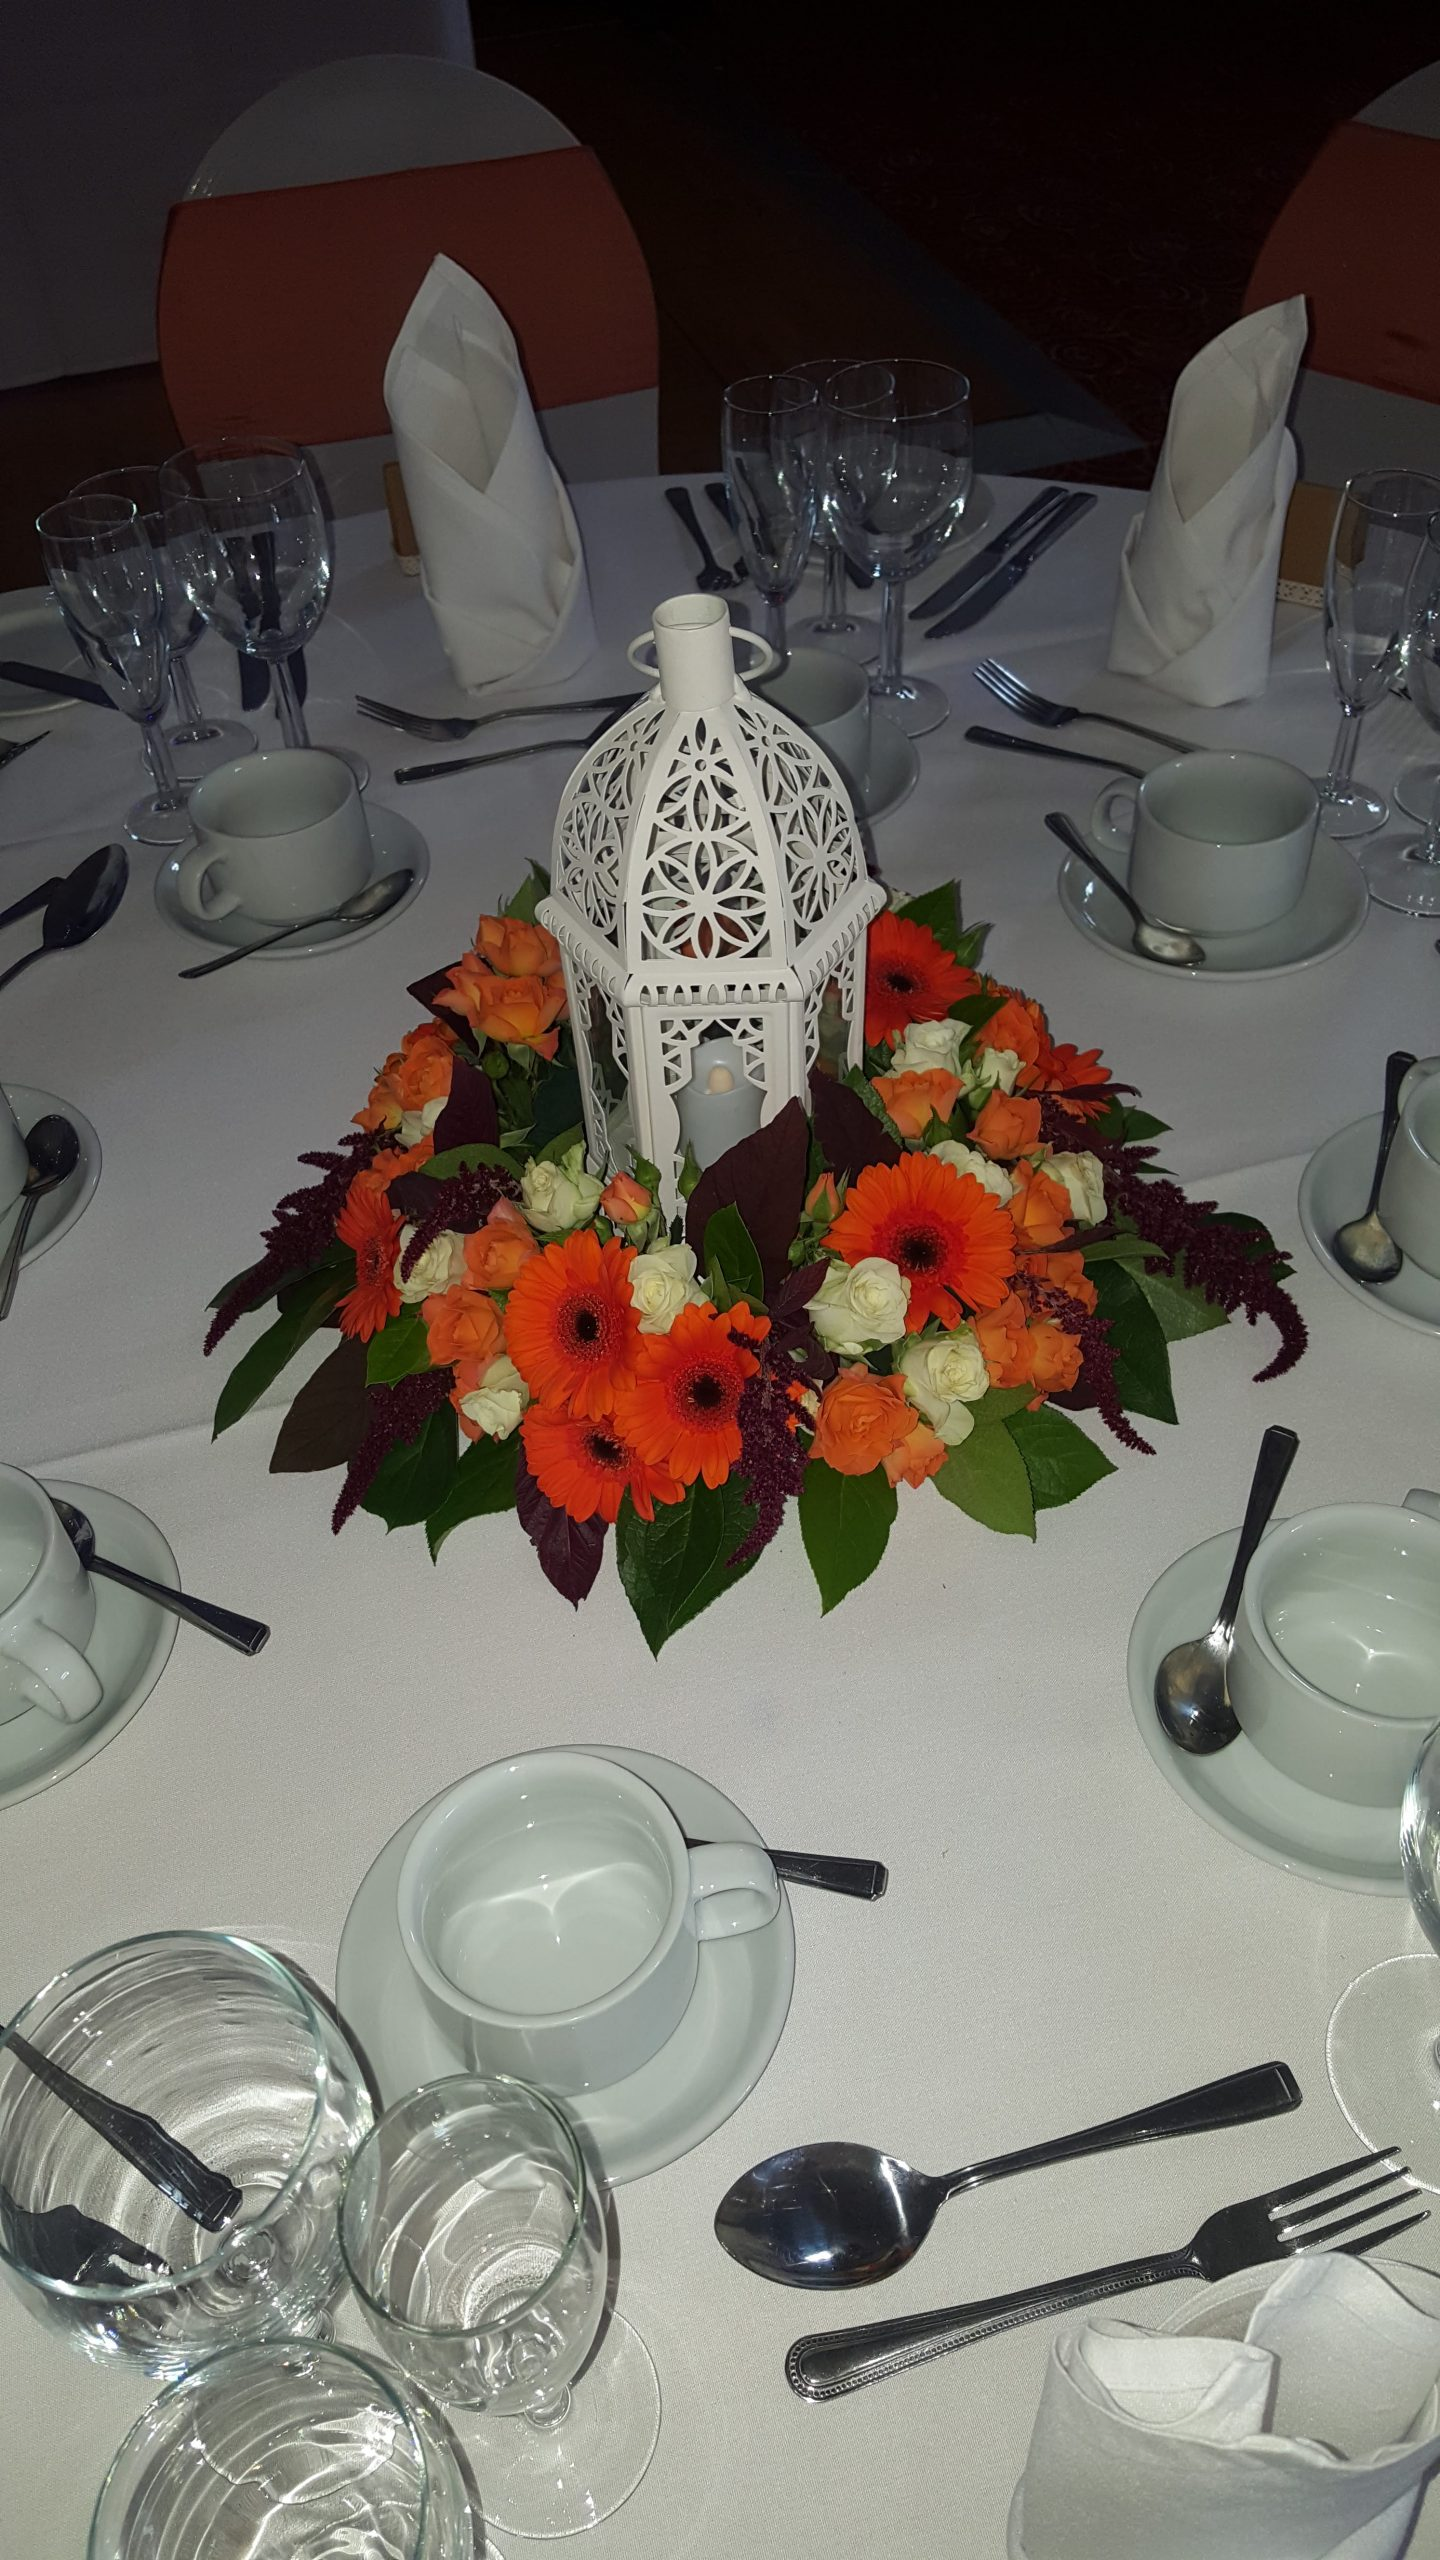 Lantern Table Centers with Orange Flowers